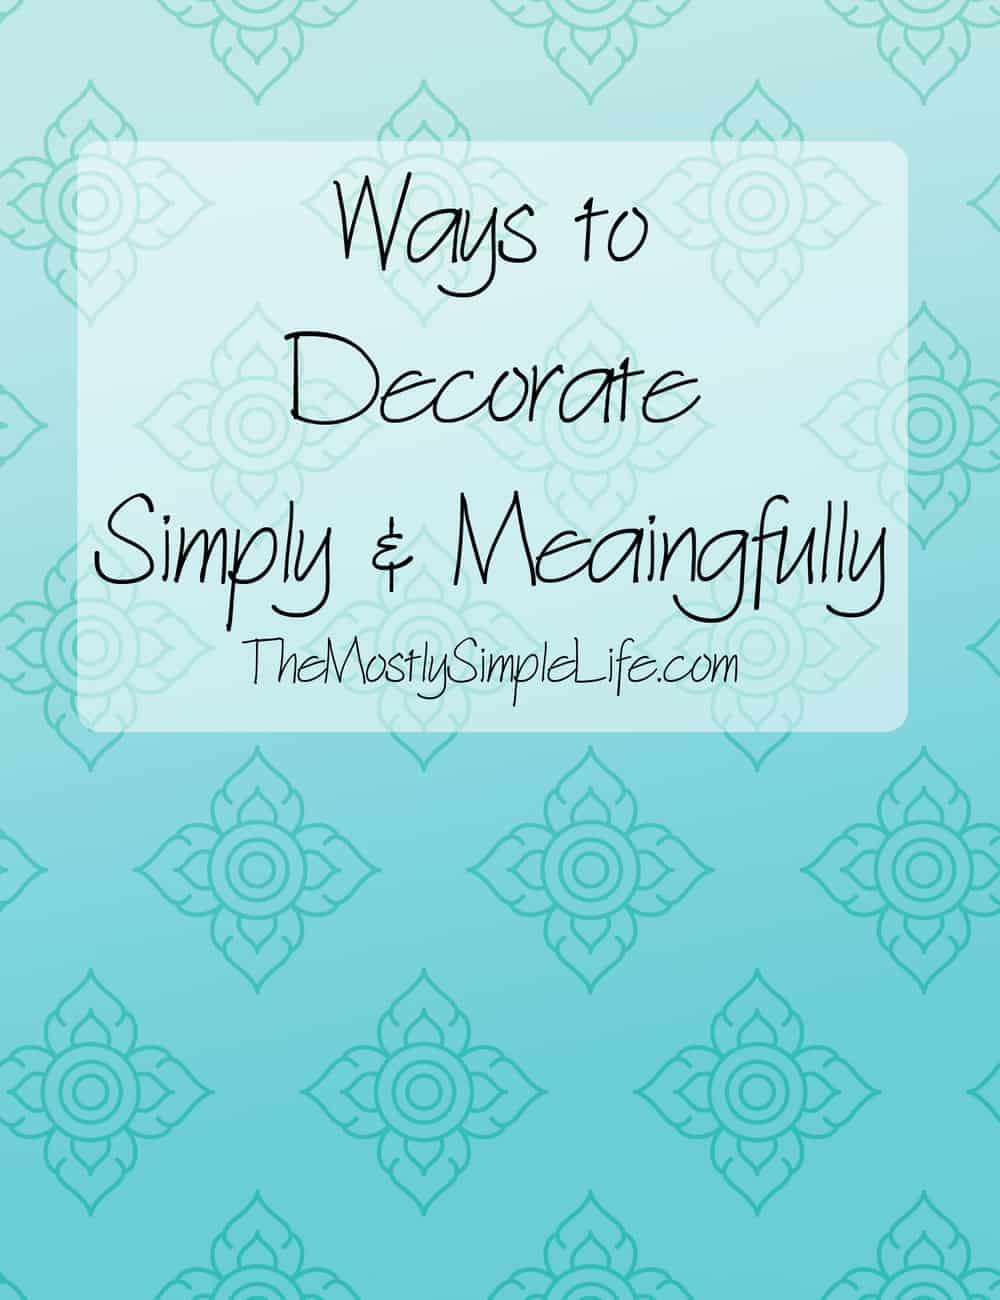 Way to Decorate Simply & Meaningfully